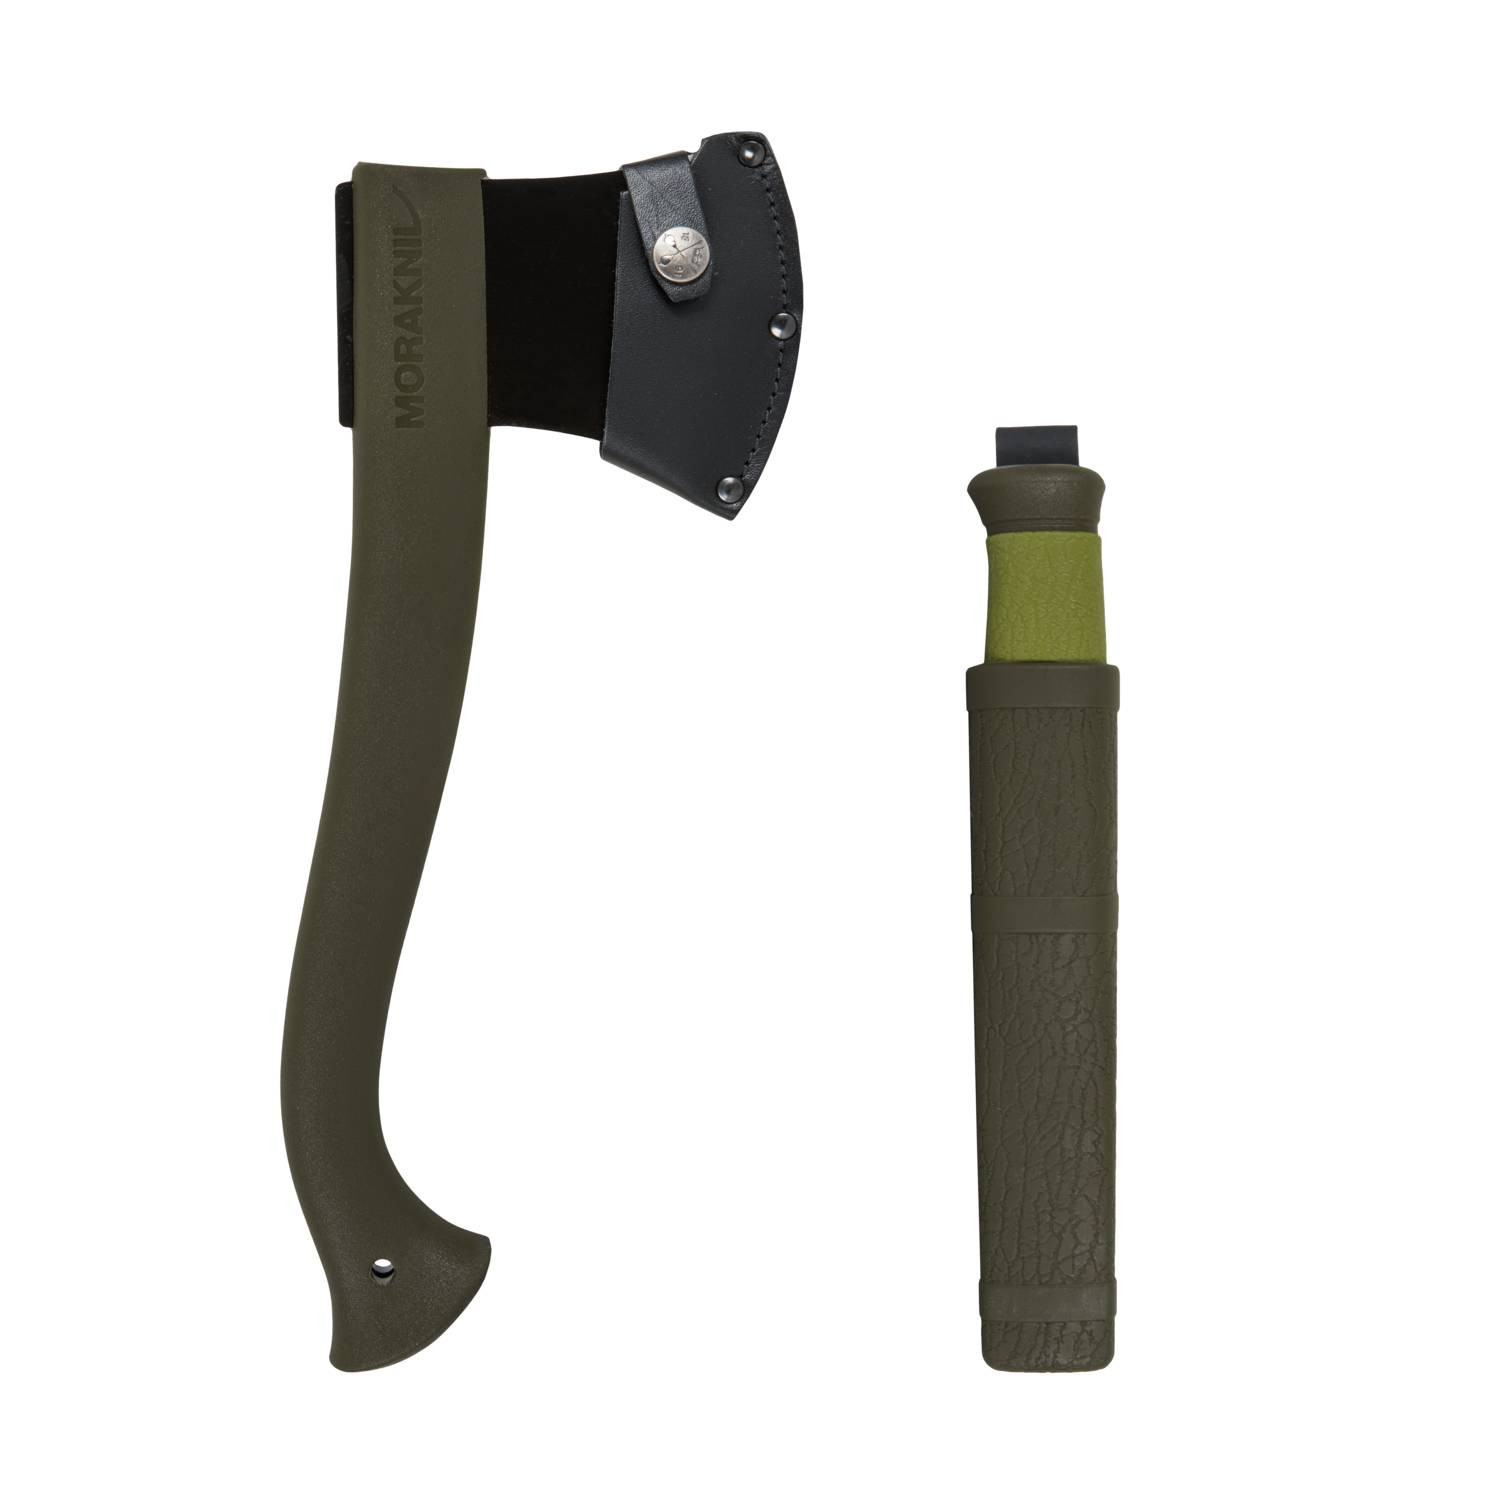 Zestaw Nóż i Toporek Morakniv® Outdoor Kit MG